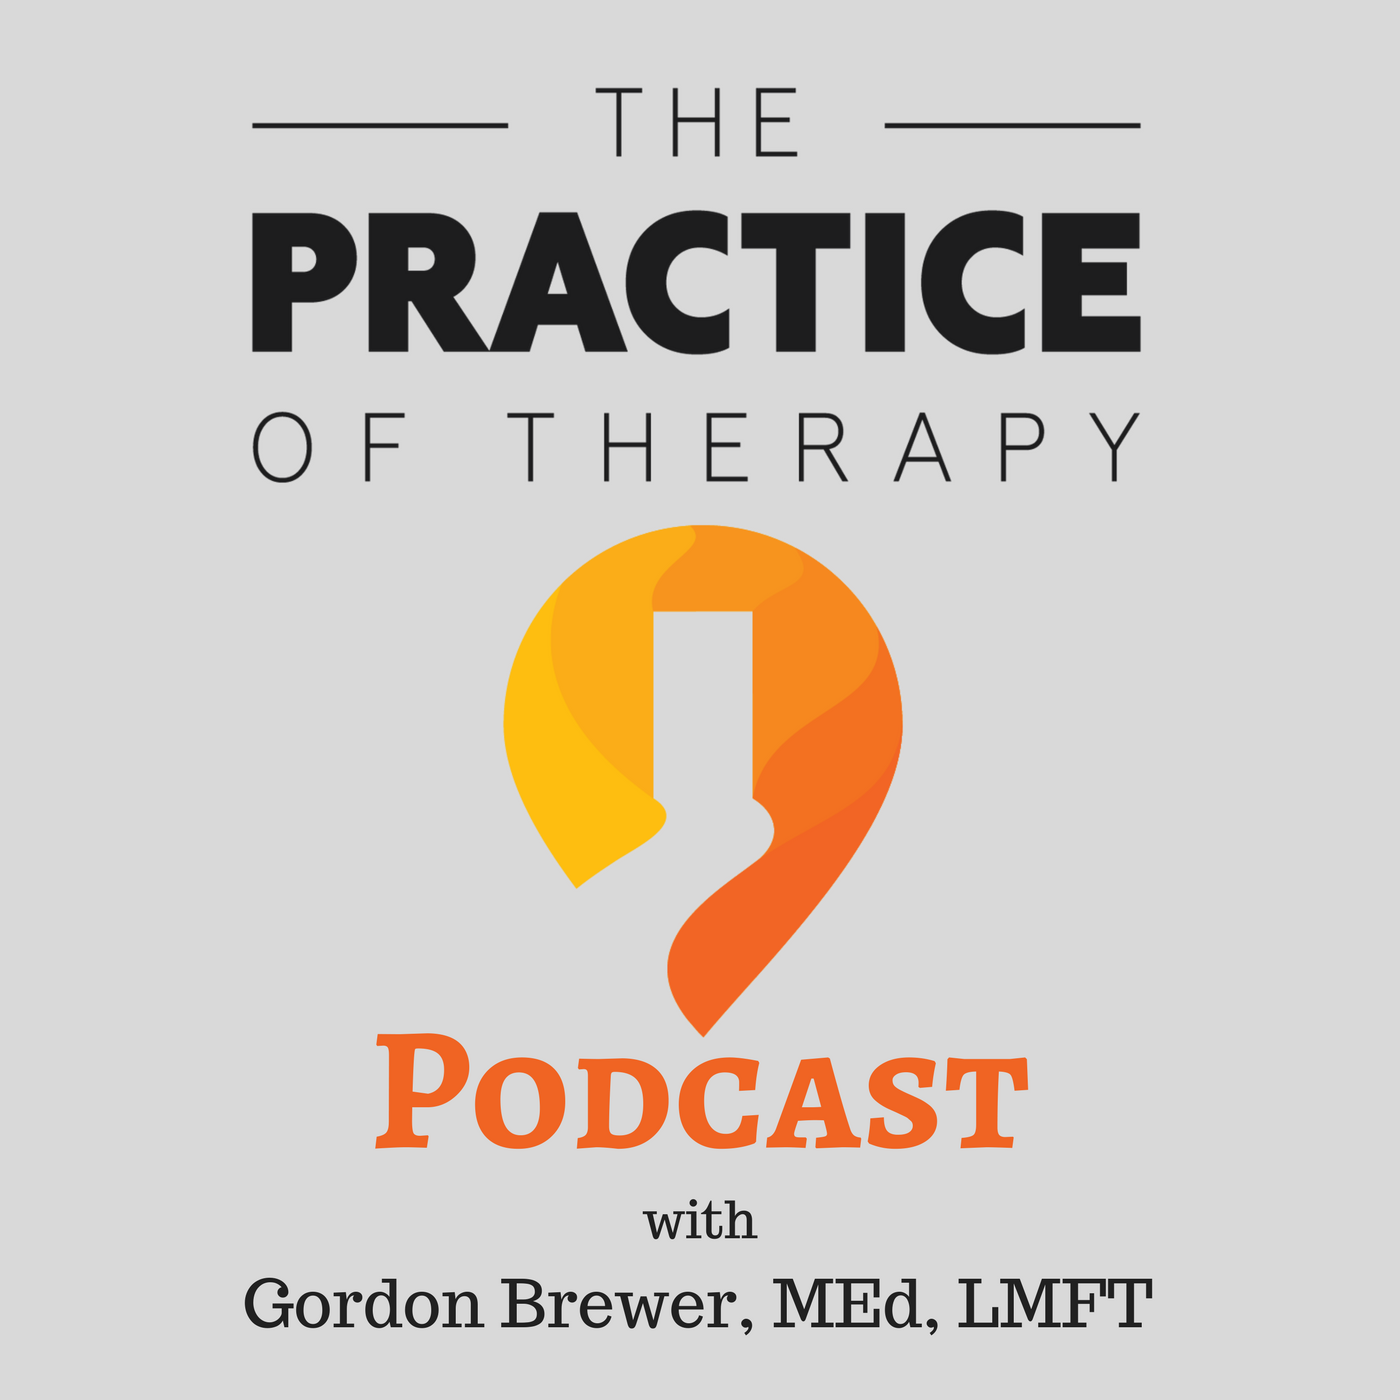 The Practice of Therapy Podcast with Gordon Brewer, LMFT